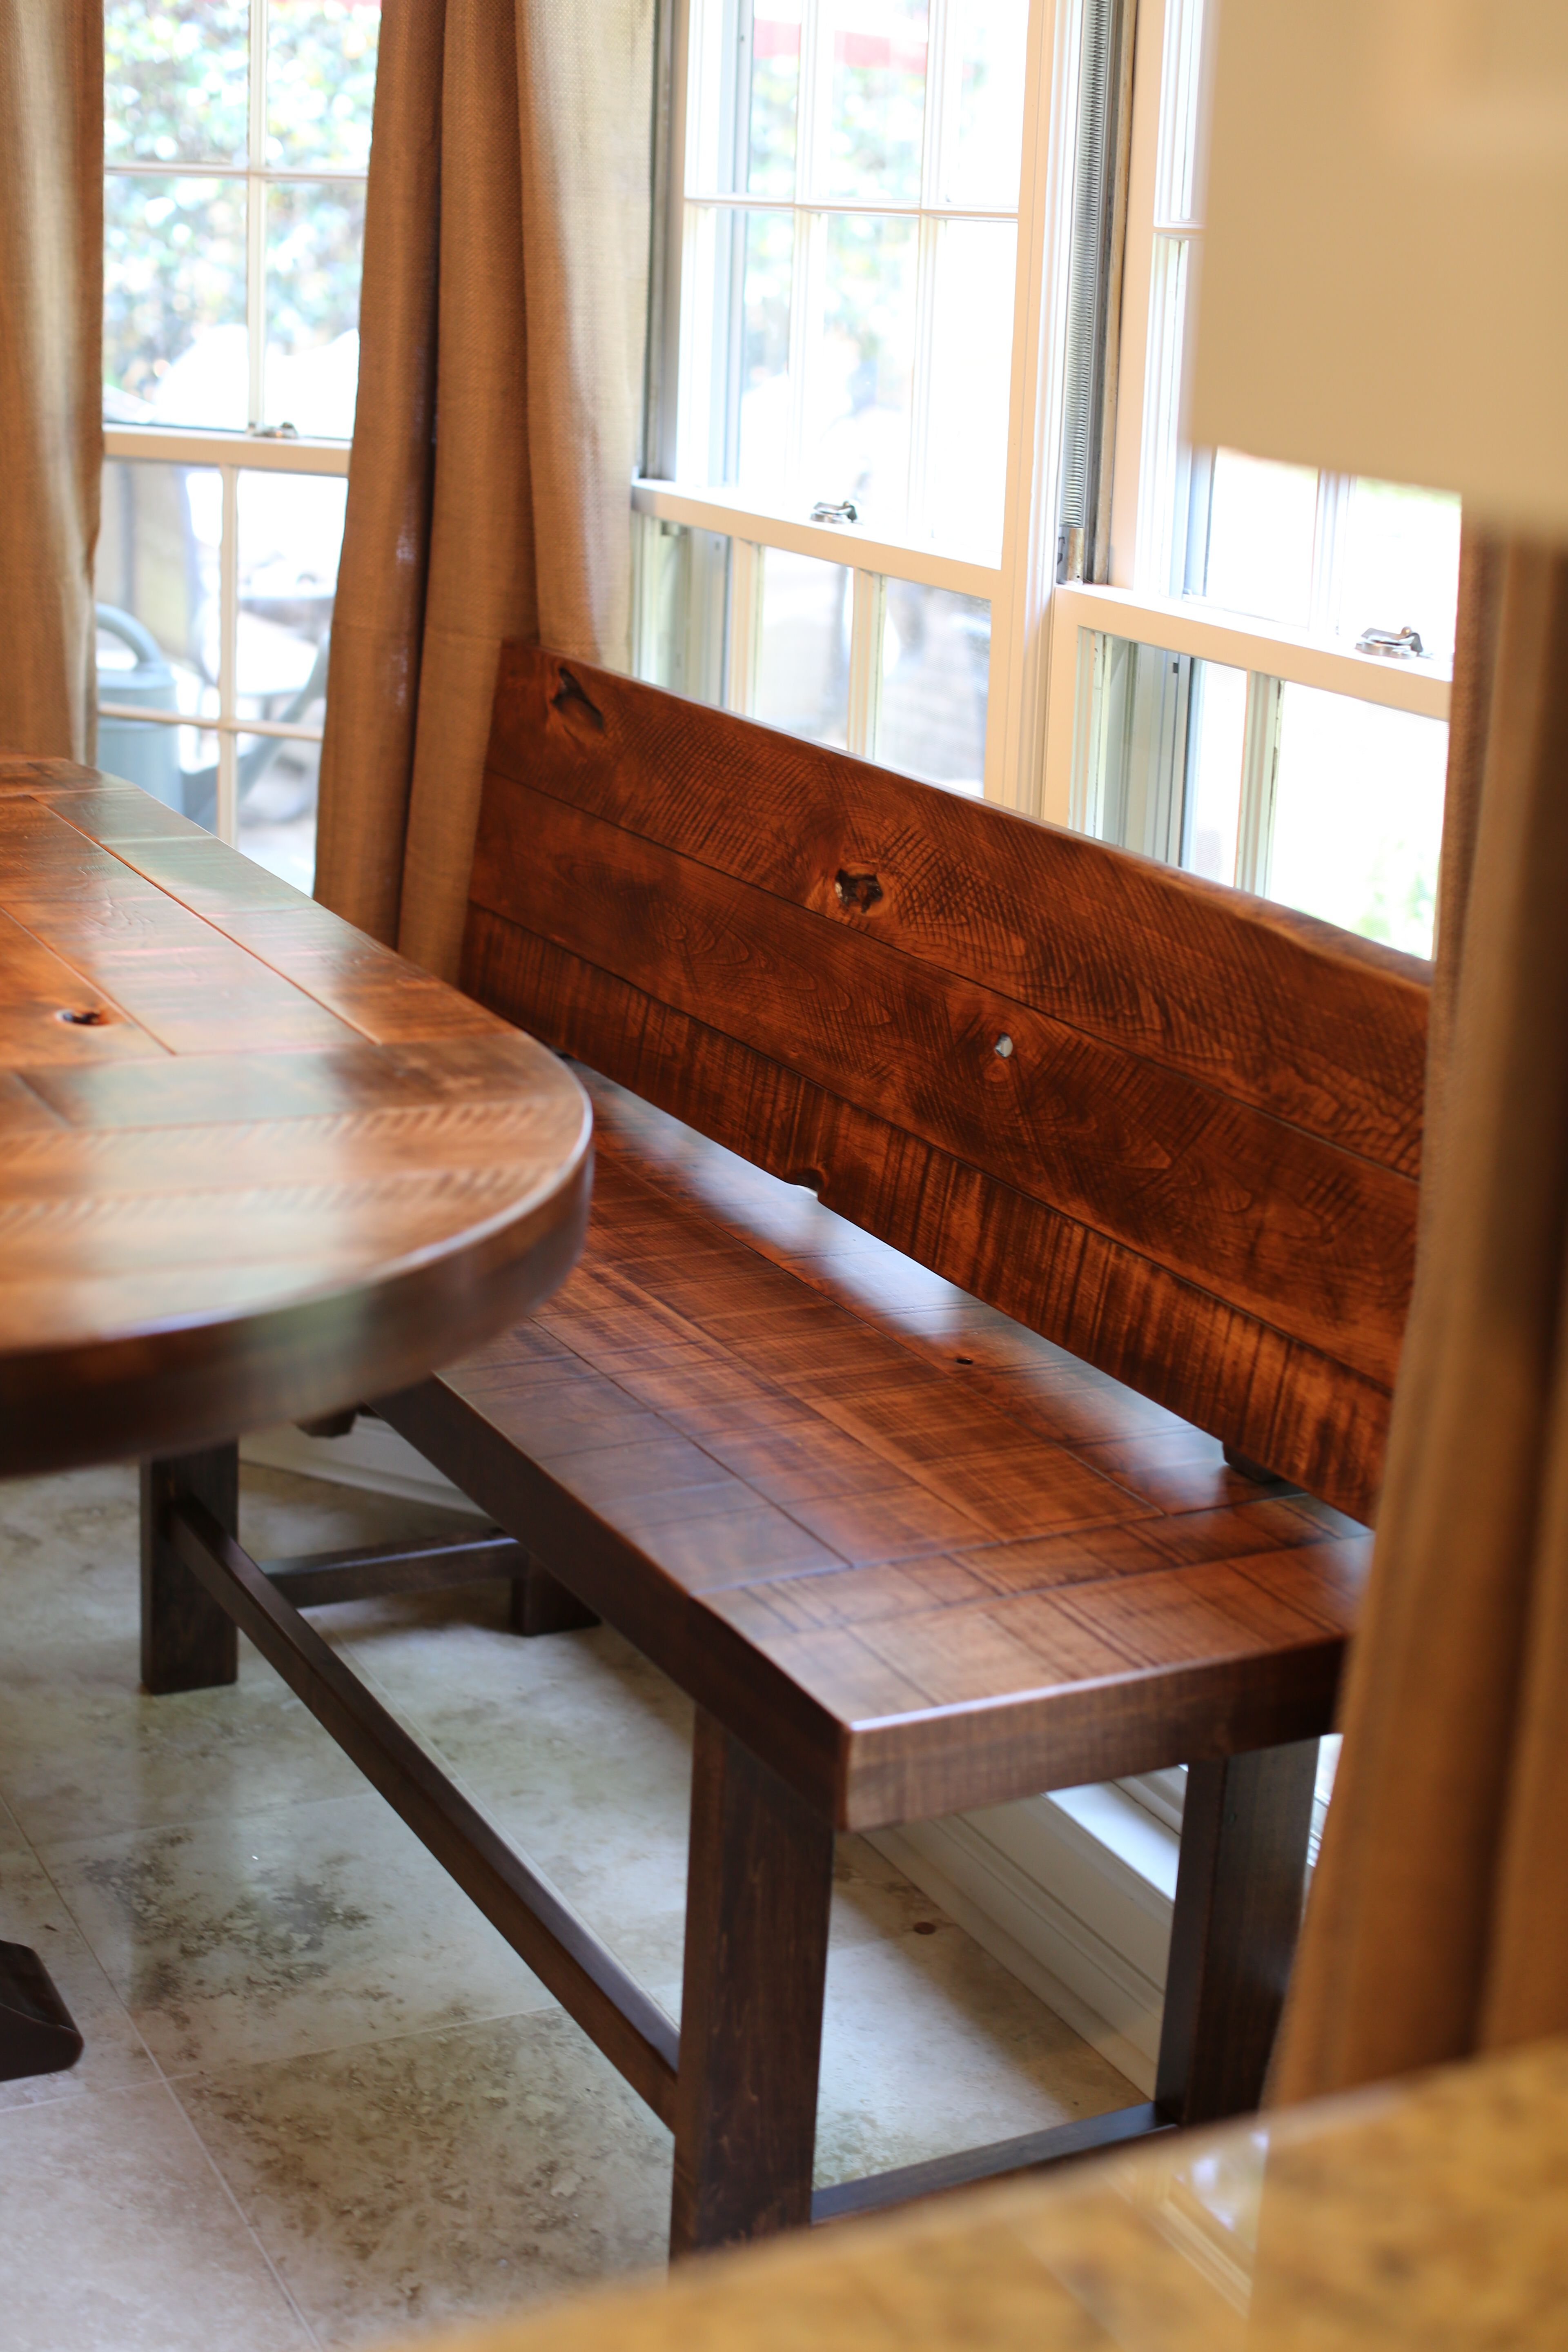 Standard Bench Farmhouse table with bench, Dining bench